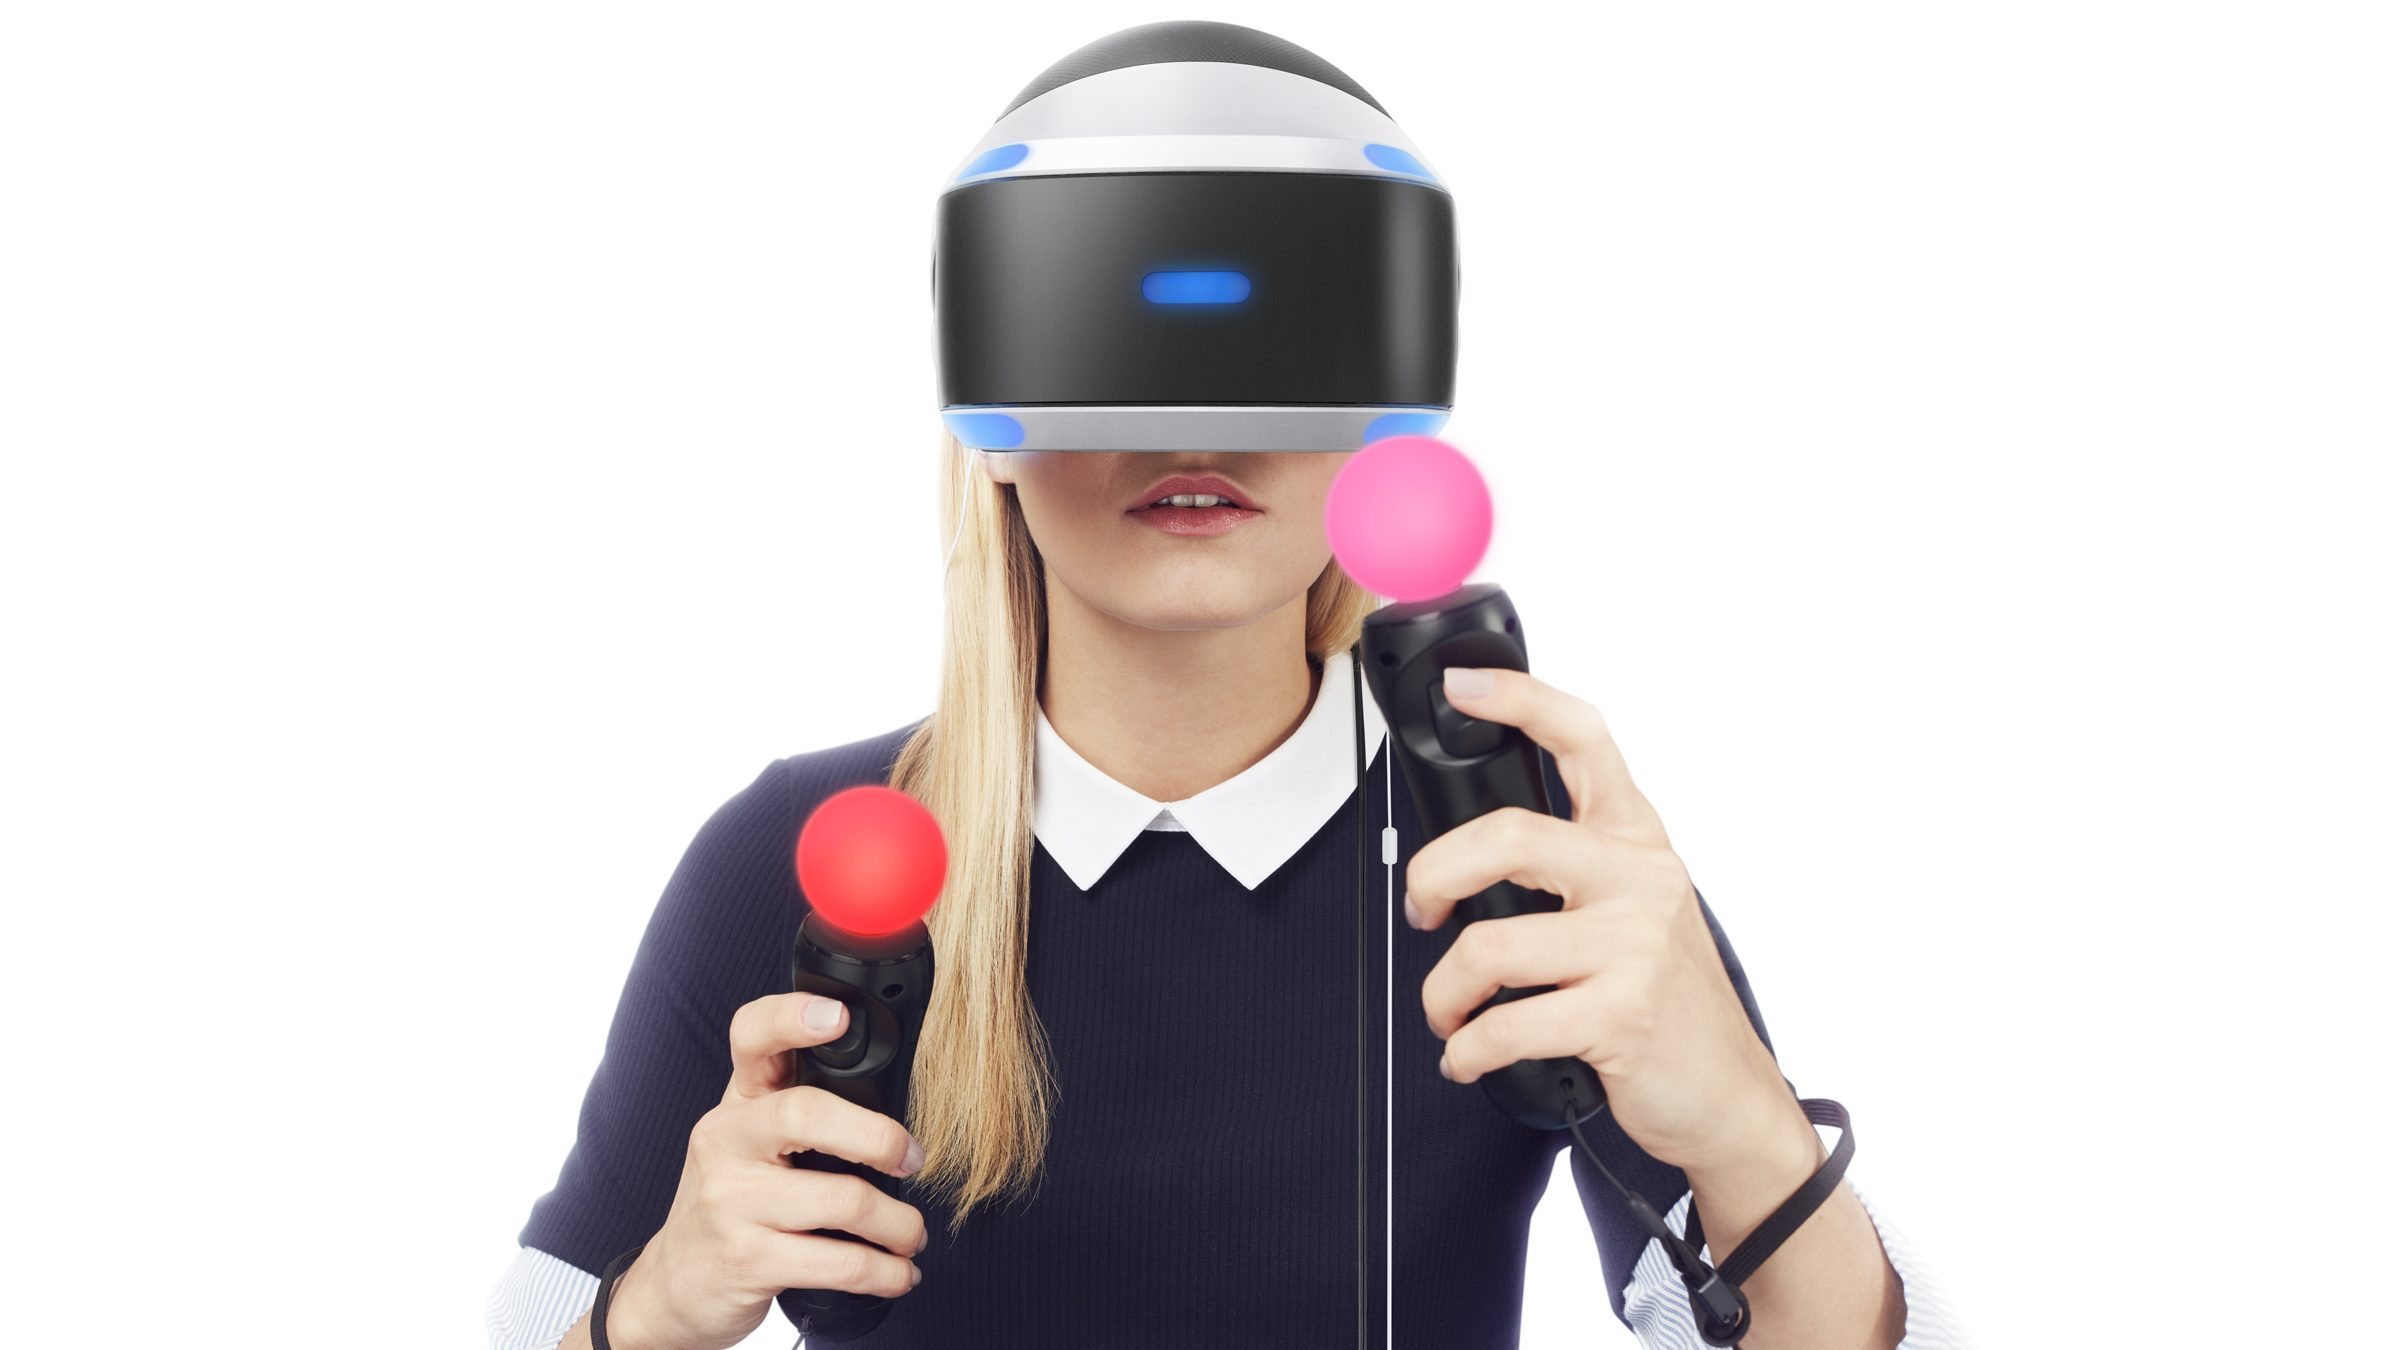 How PlayStation VR is worse than HTC Vive and Oculus Rift